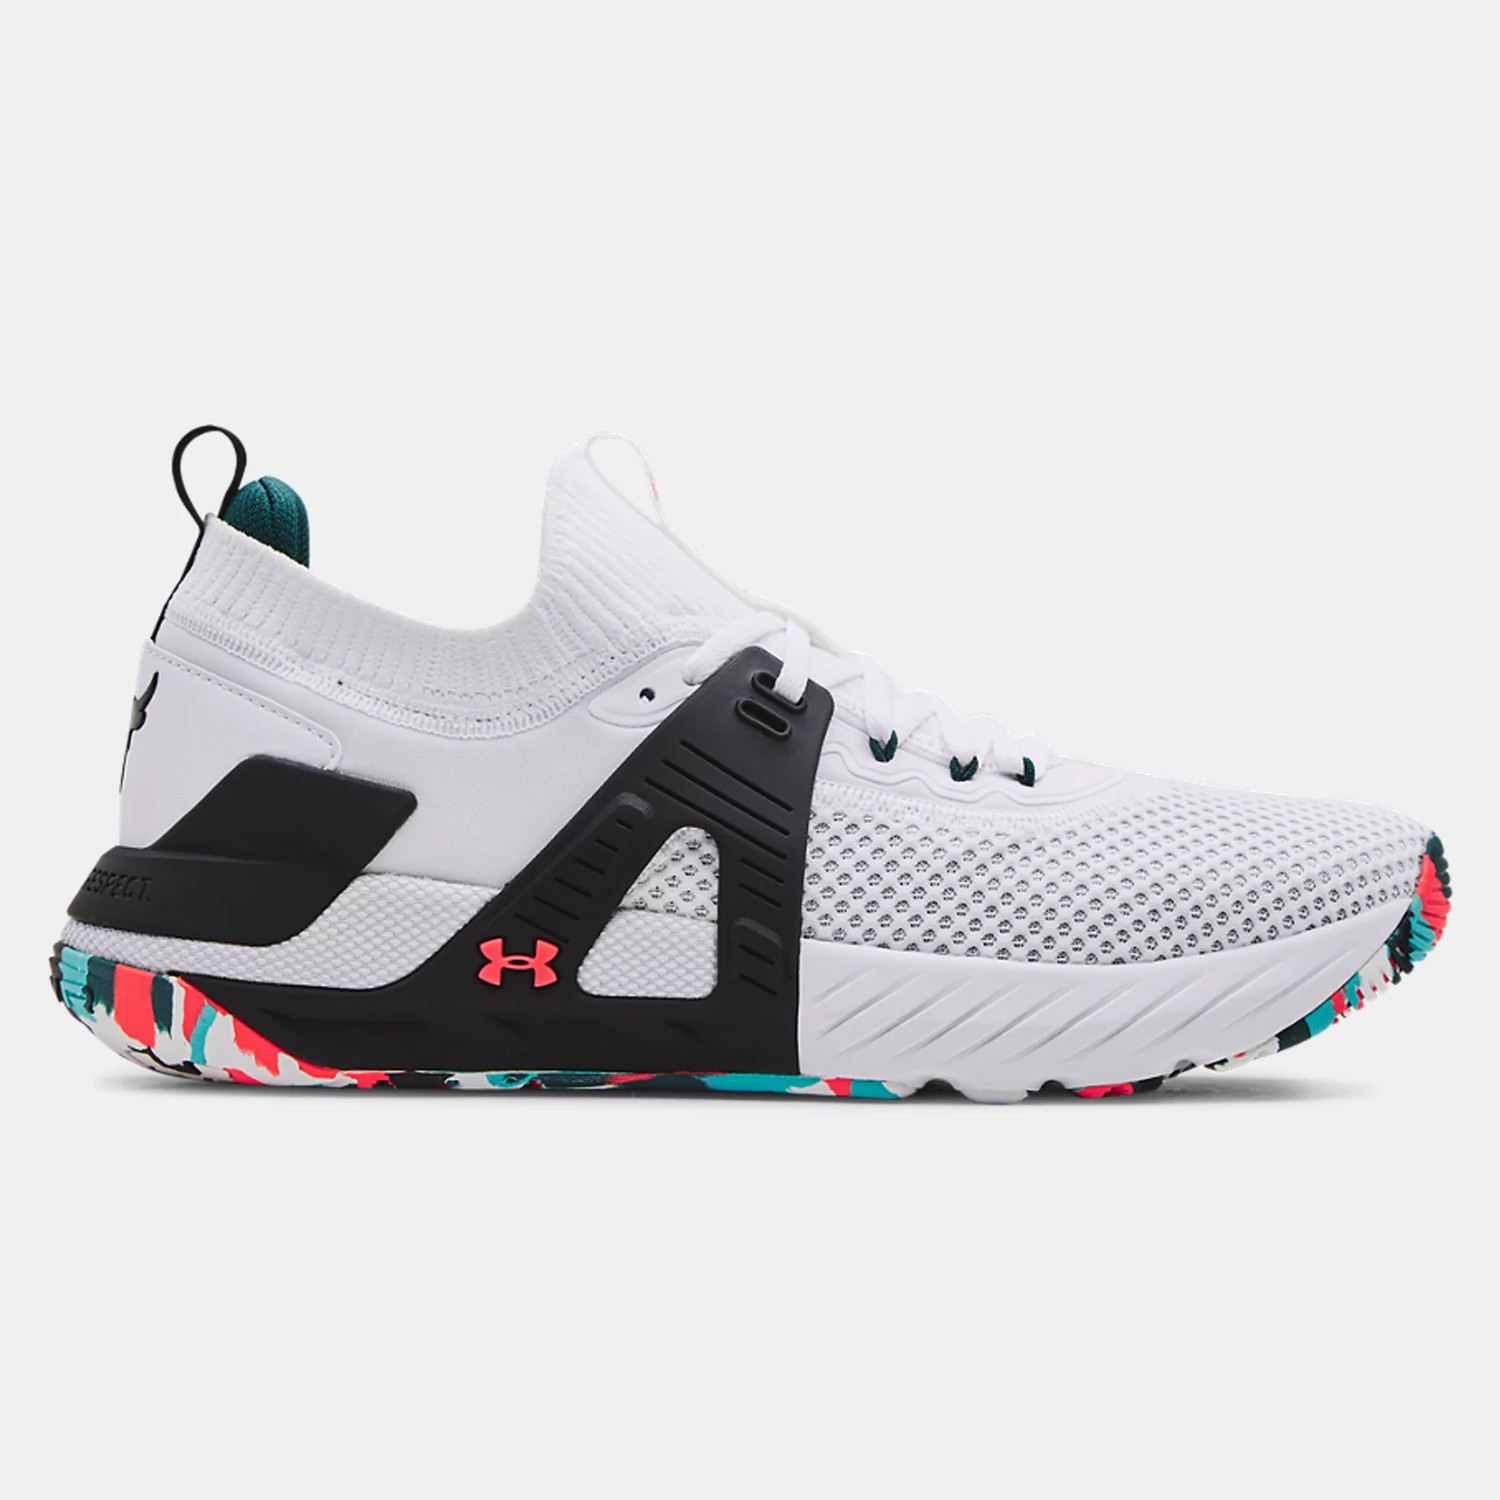 Under Armour Project Rock 4 Ανδρικά Παπούτσια (9000087700_55281)